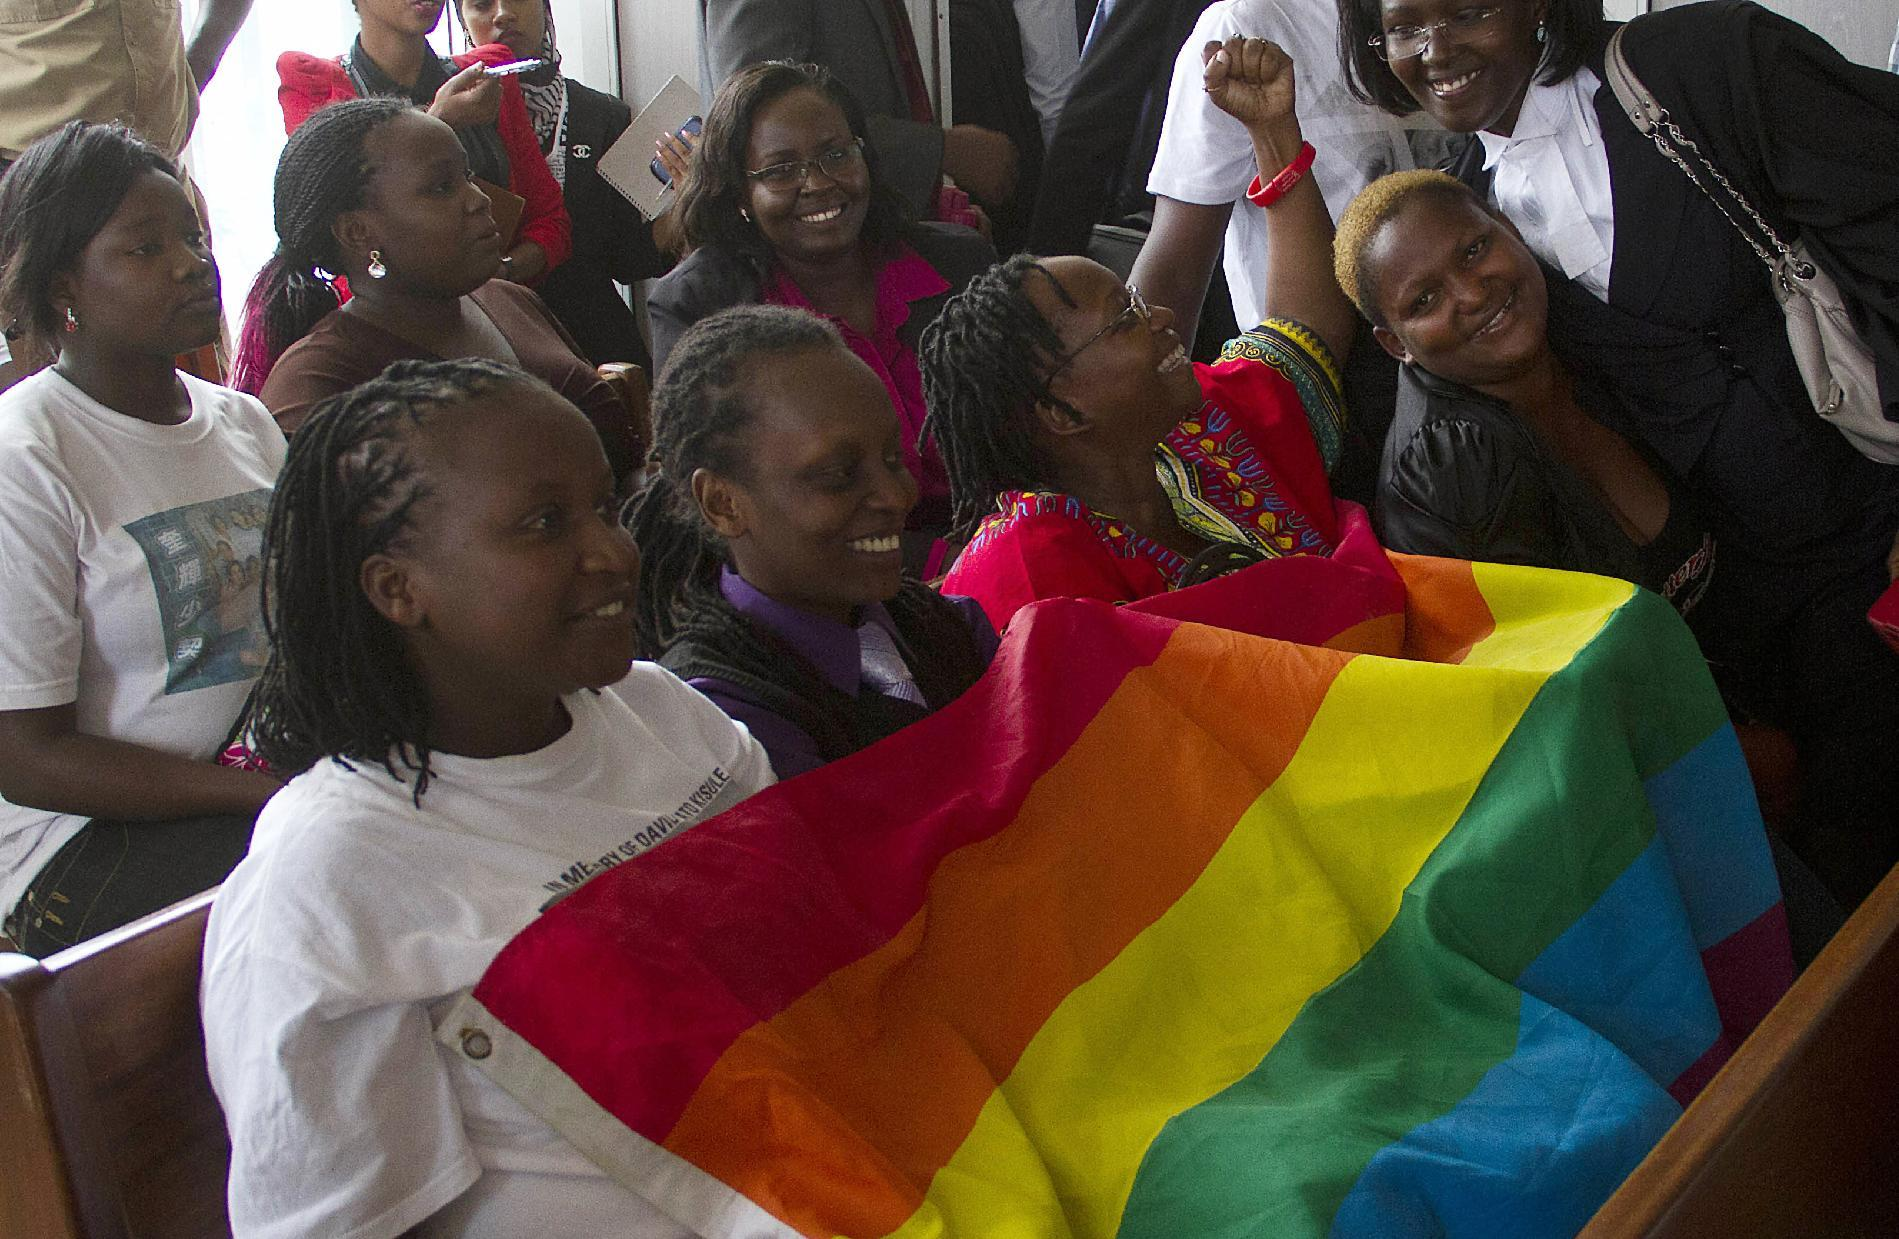 Members of Uganda's gay community and gay rights activists react as the constitutional court overturns anti-gay laws in Kampala on August 1, 2014 (AFP Photo/Isaac Kasamani)